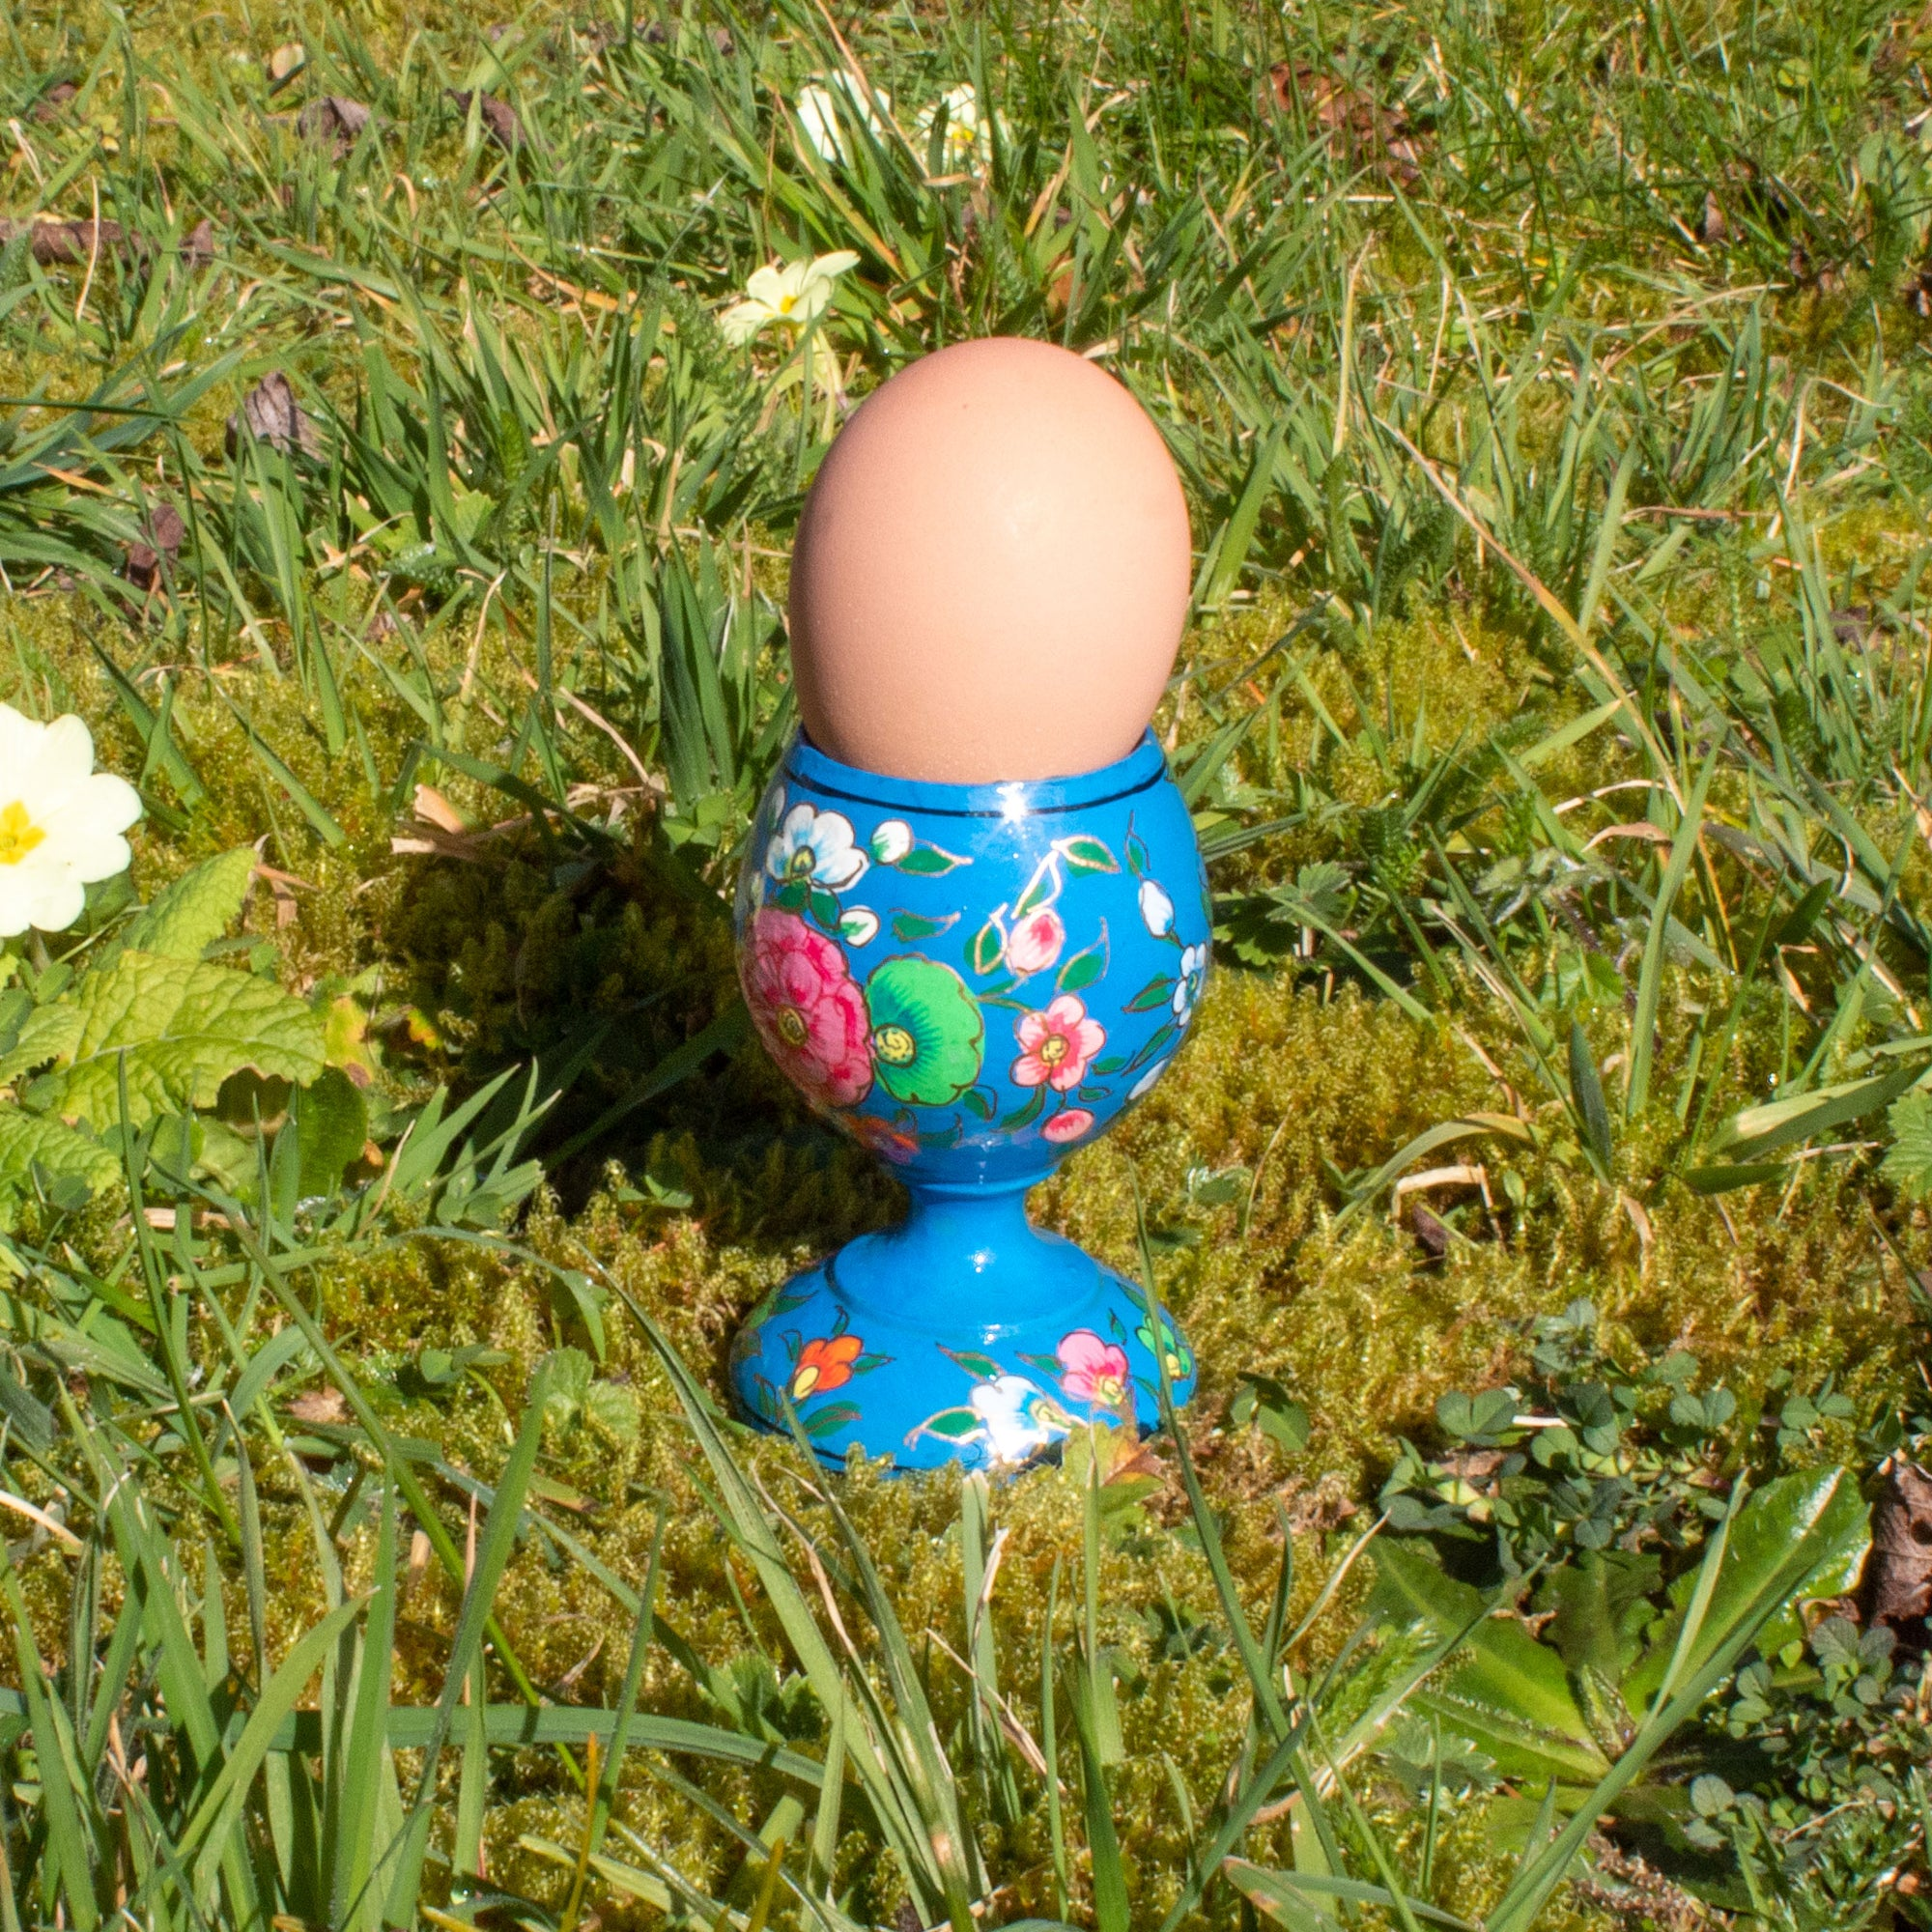 Hand Painted Decorative Egg Cup - Blue | Egg Cup - The Naughty Shrew